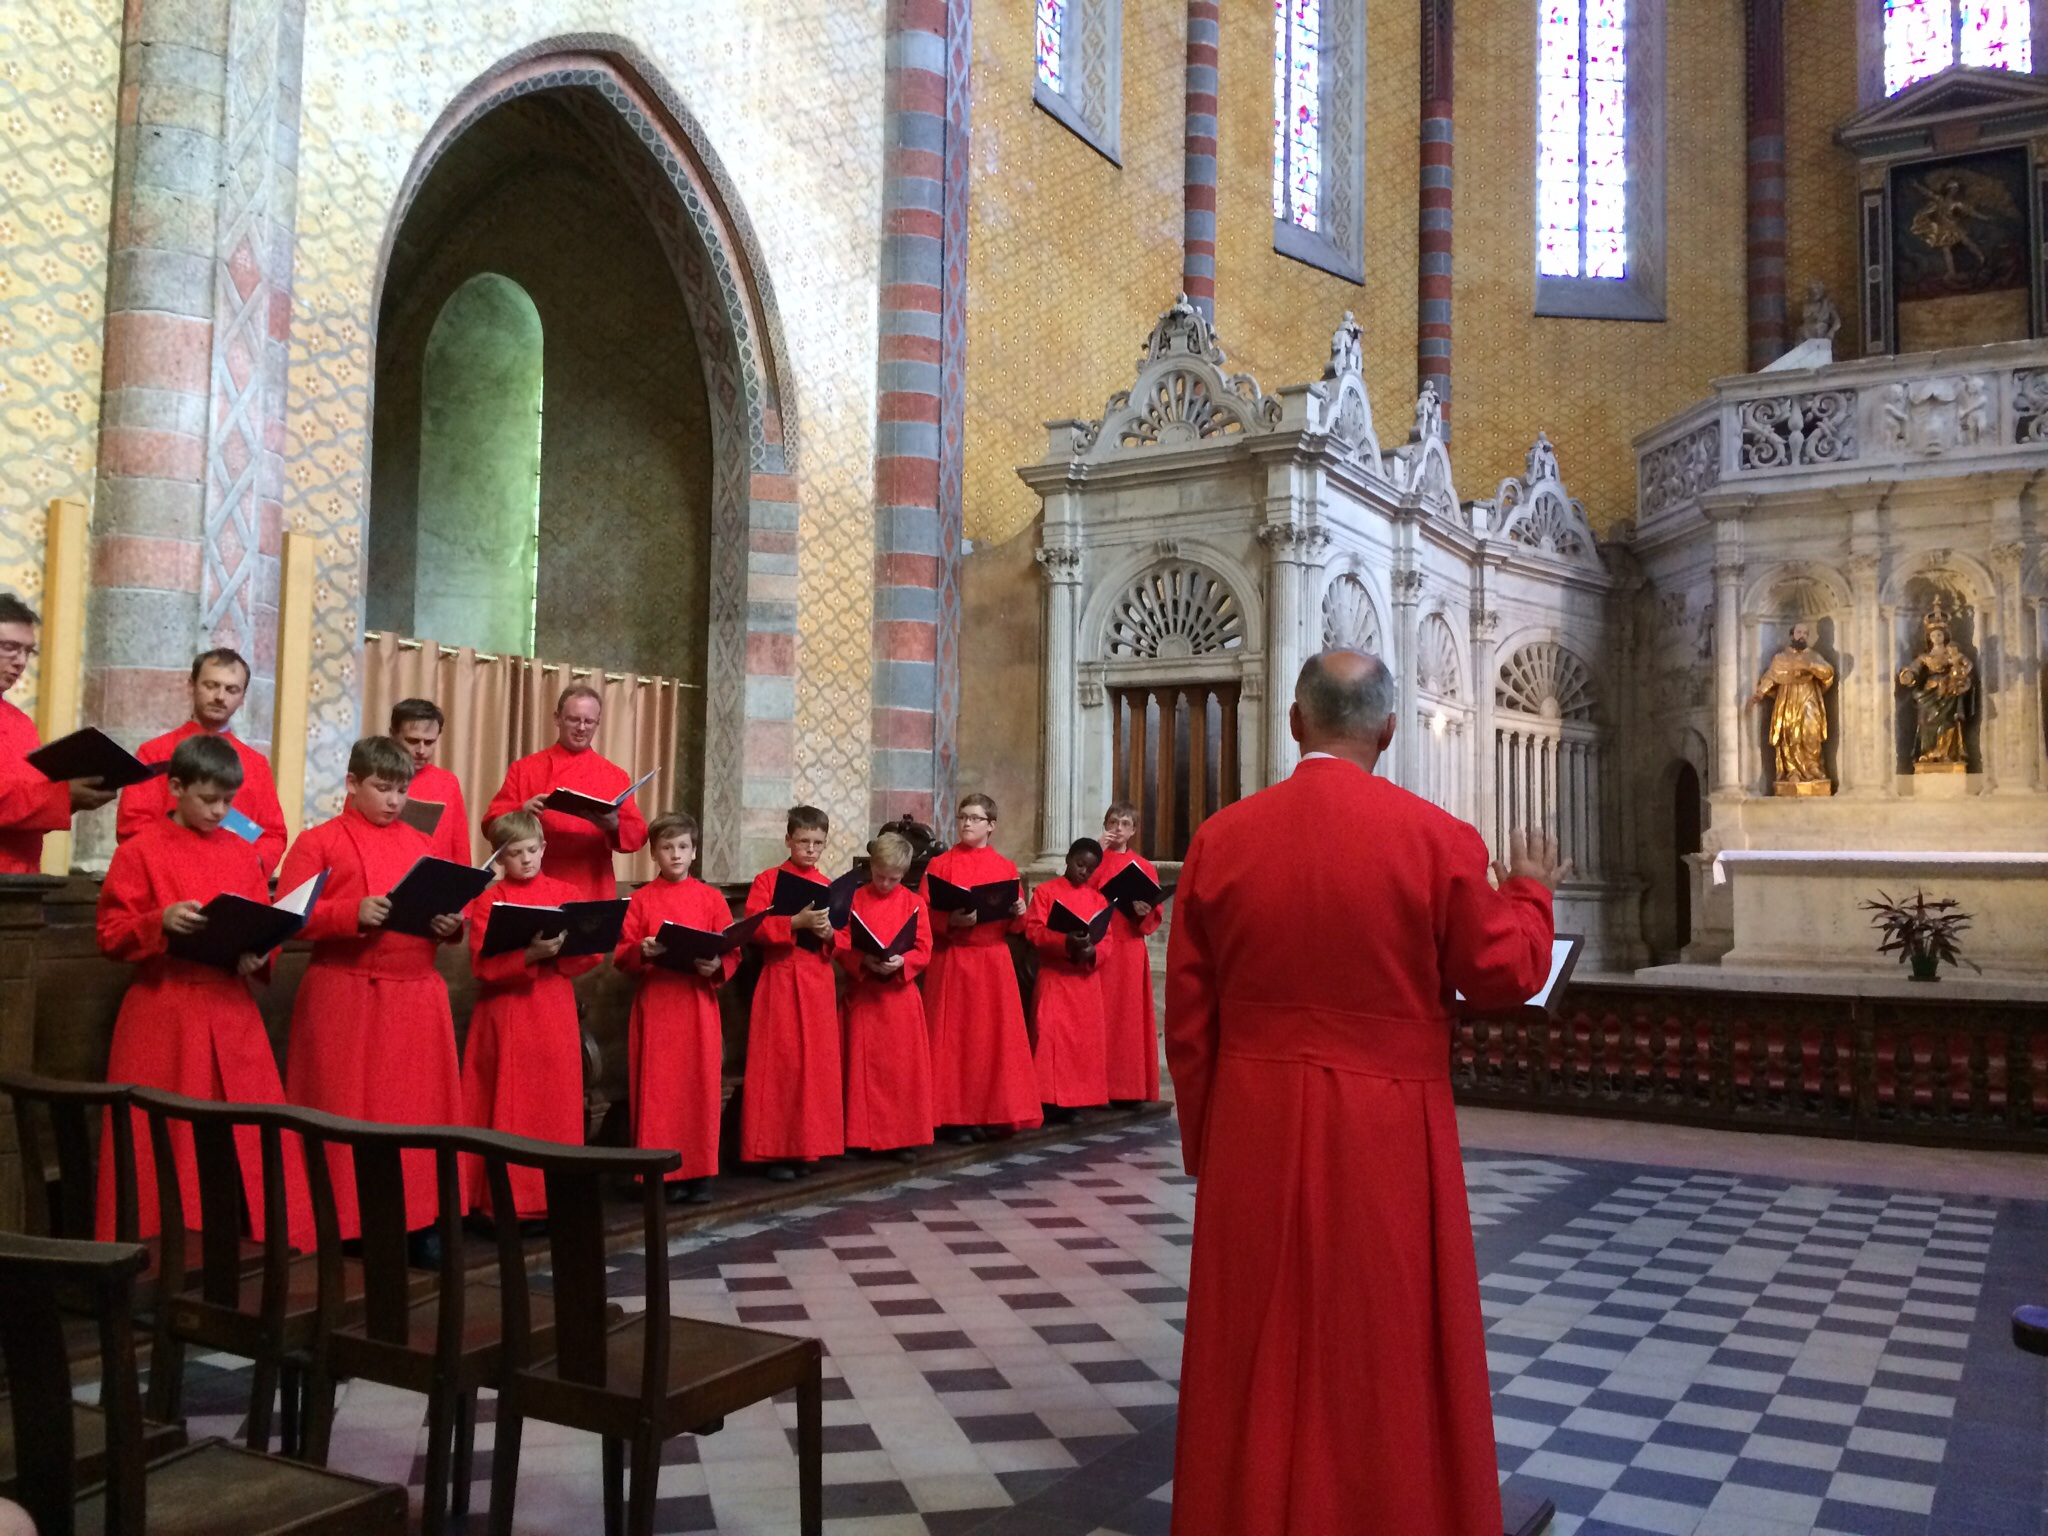 This is one half of the Ely choir in the cathedral - all m en and boys and they sound wonderful.